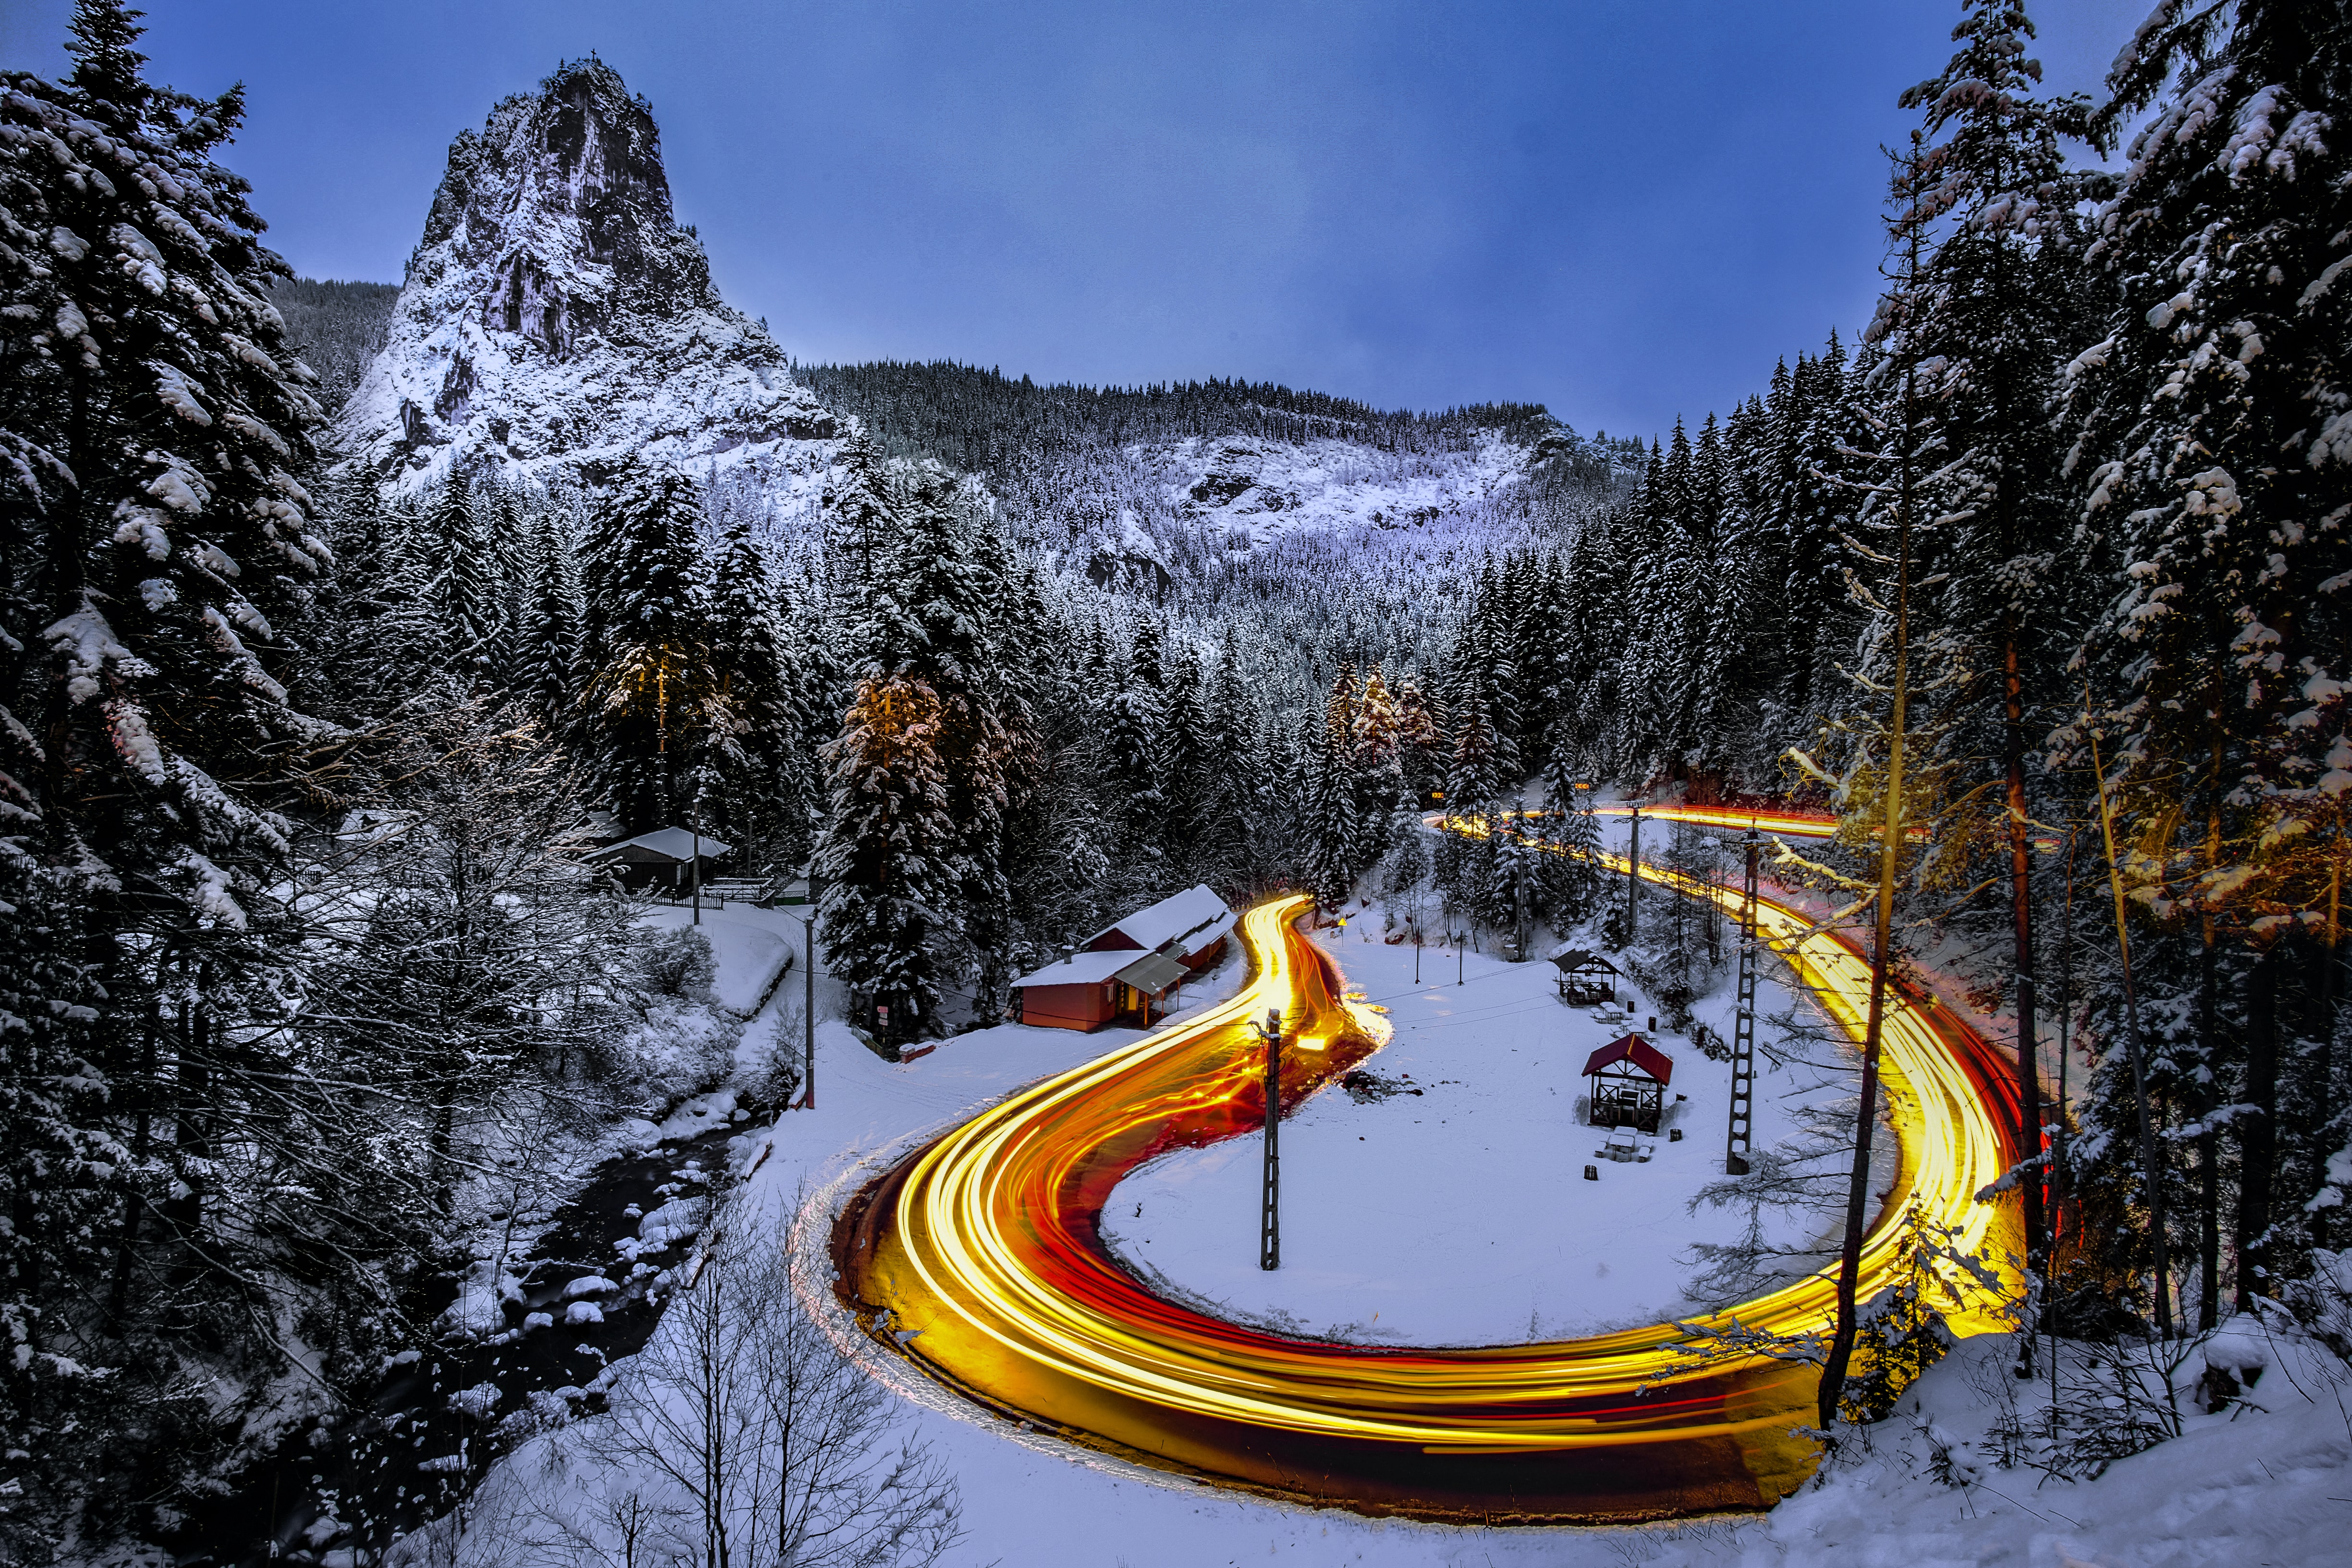 time-lapse photography of road surrounded by pine trees coated with snow